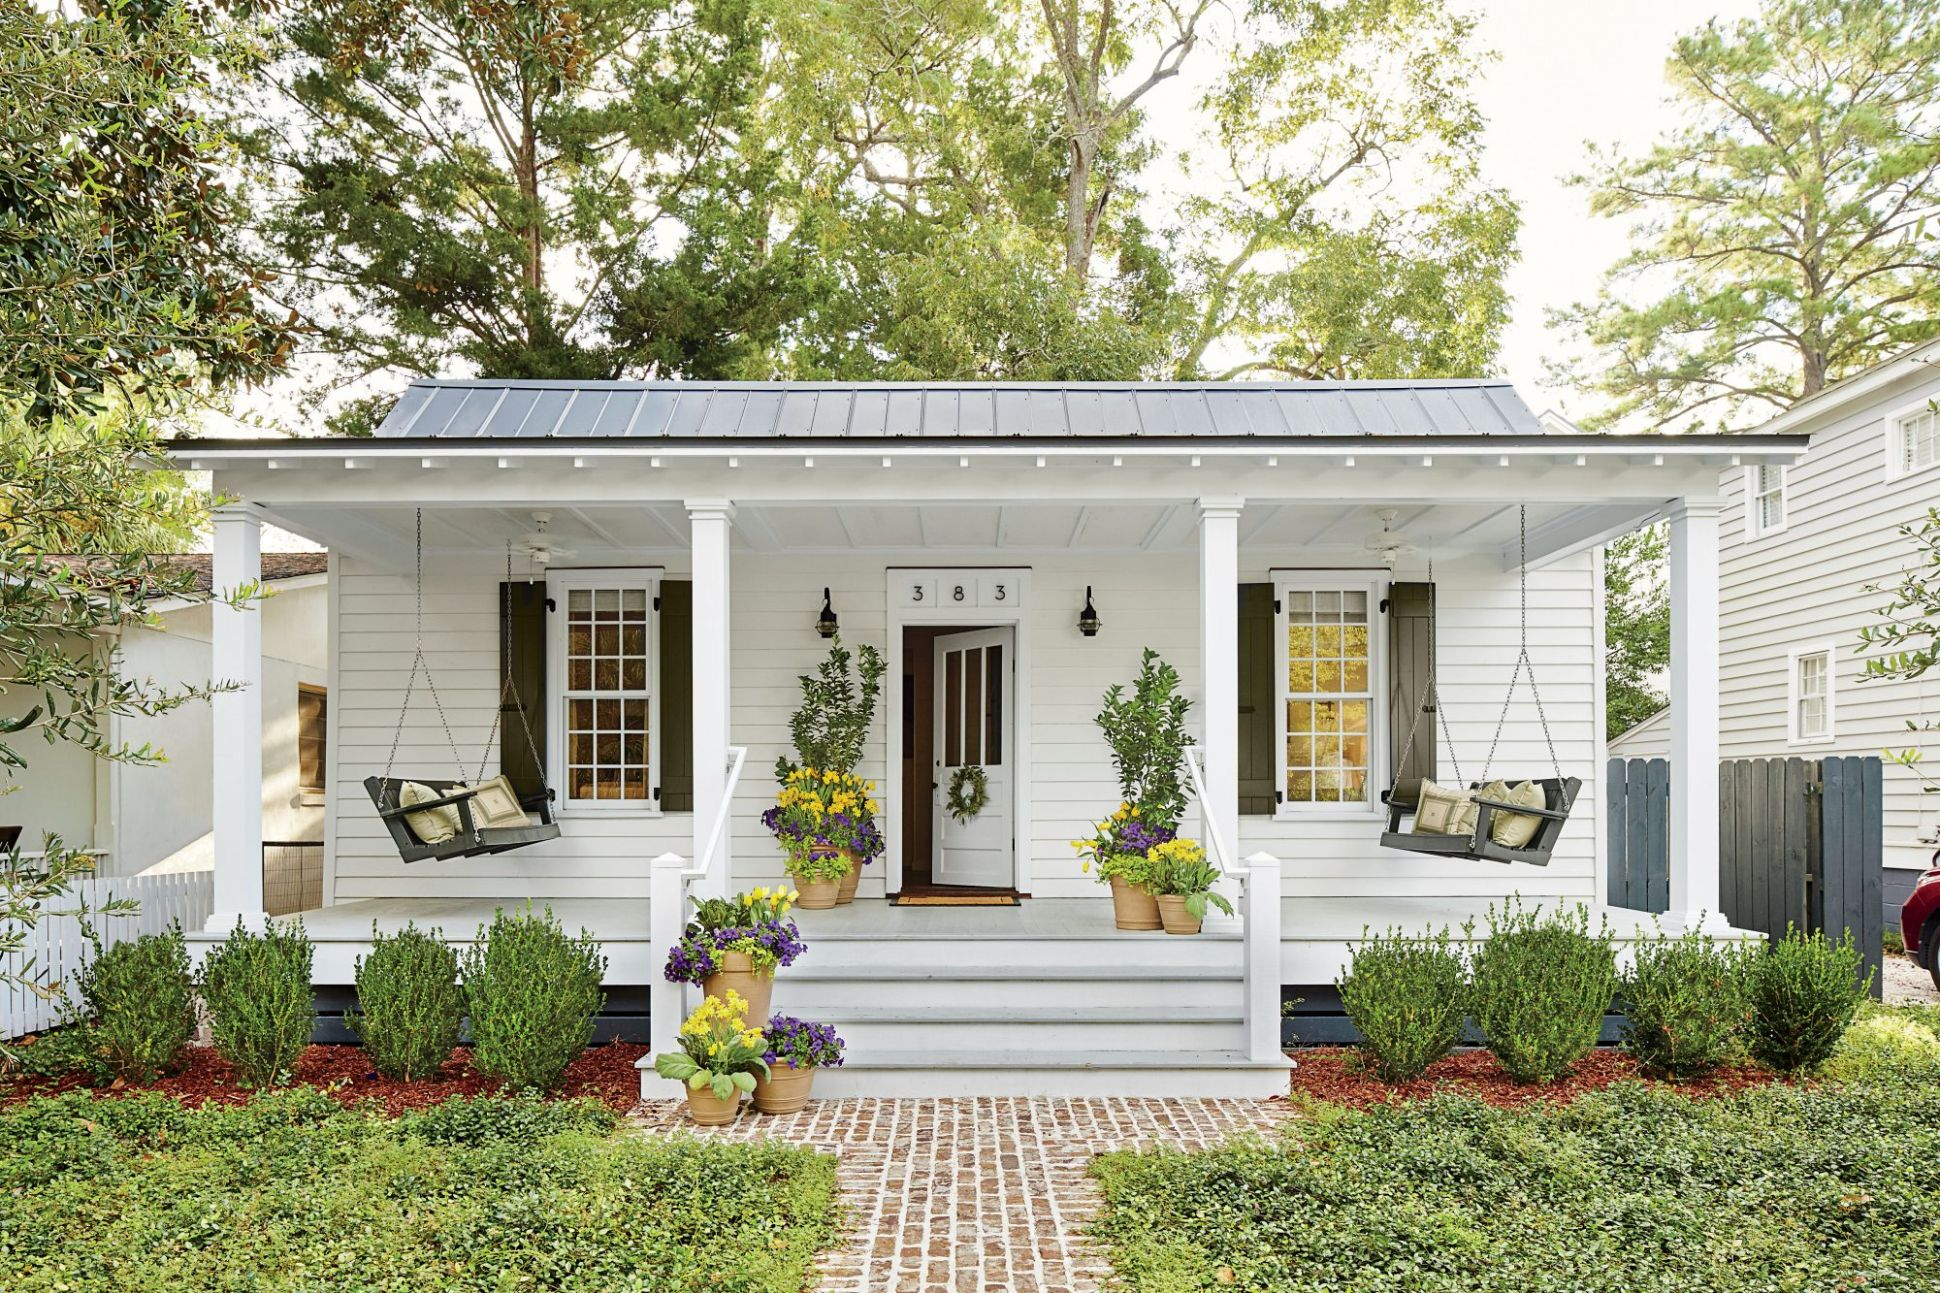 Front Porch Decorating Ideas for an Inviting Entry | Southern Living - front porch upgrade ideas